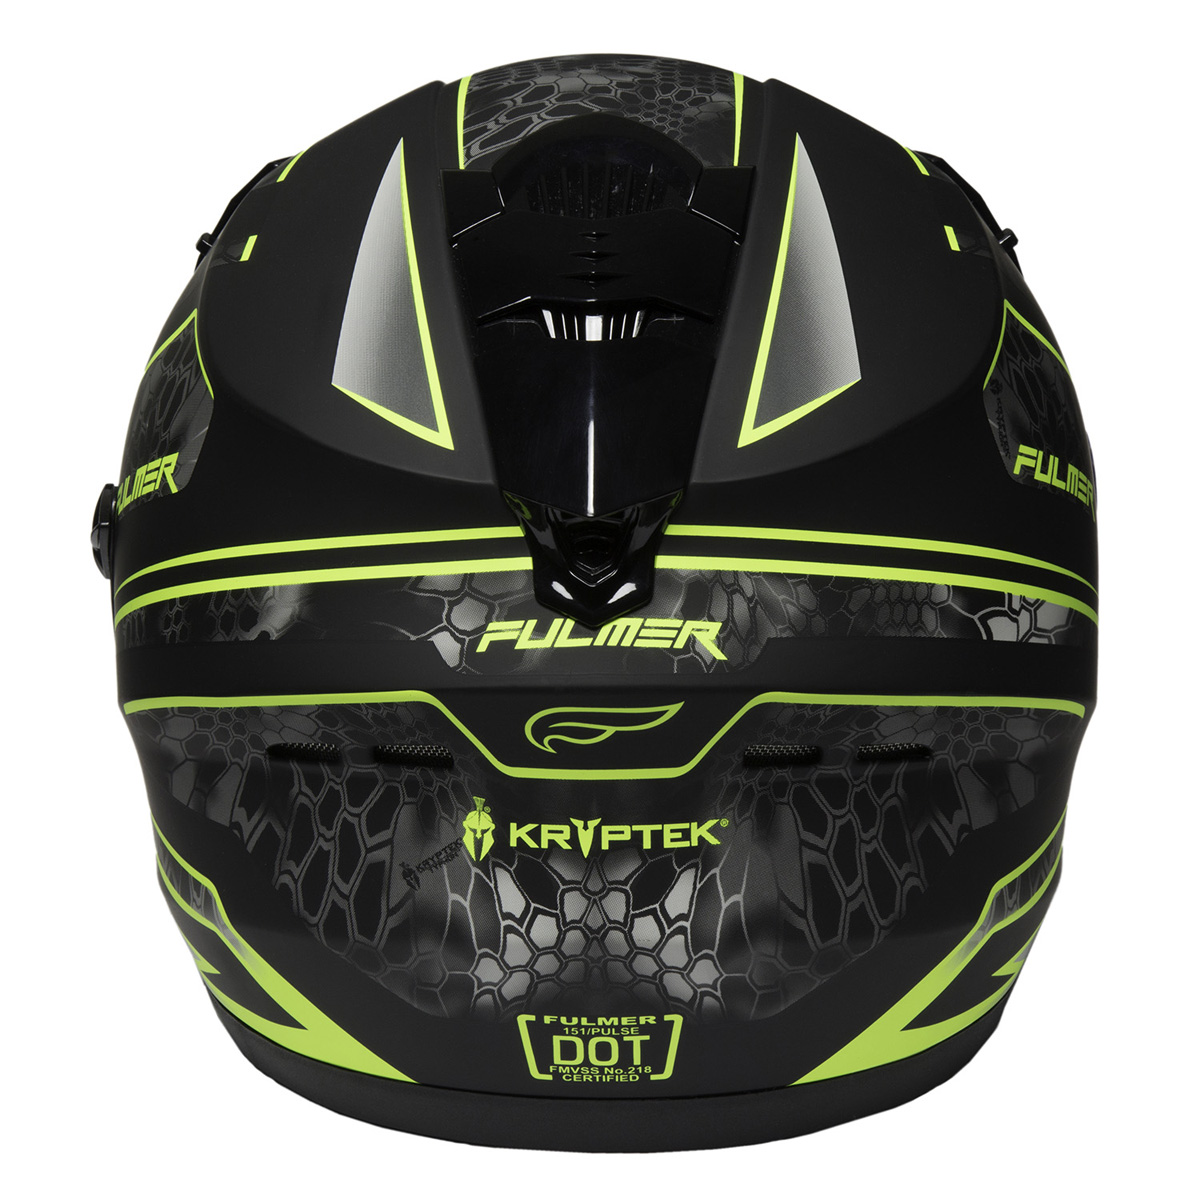 Fulmer-Adult-Full-Face-Motorcycle-Helmet-151-Pulse-DOT-Approved-Street-Bike thumbnail 19